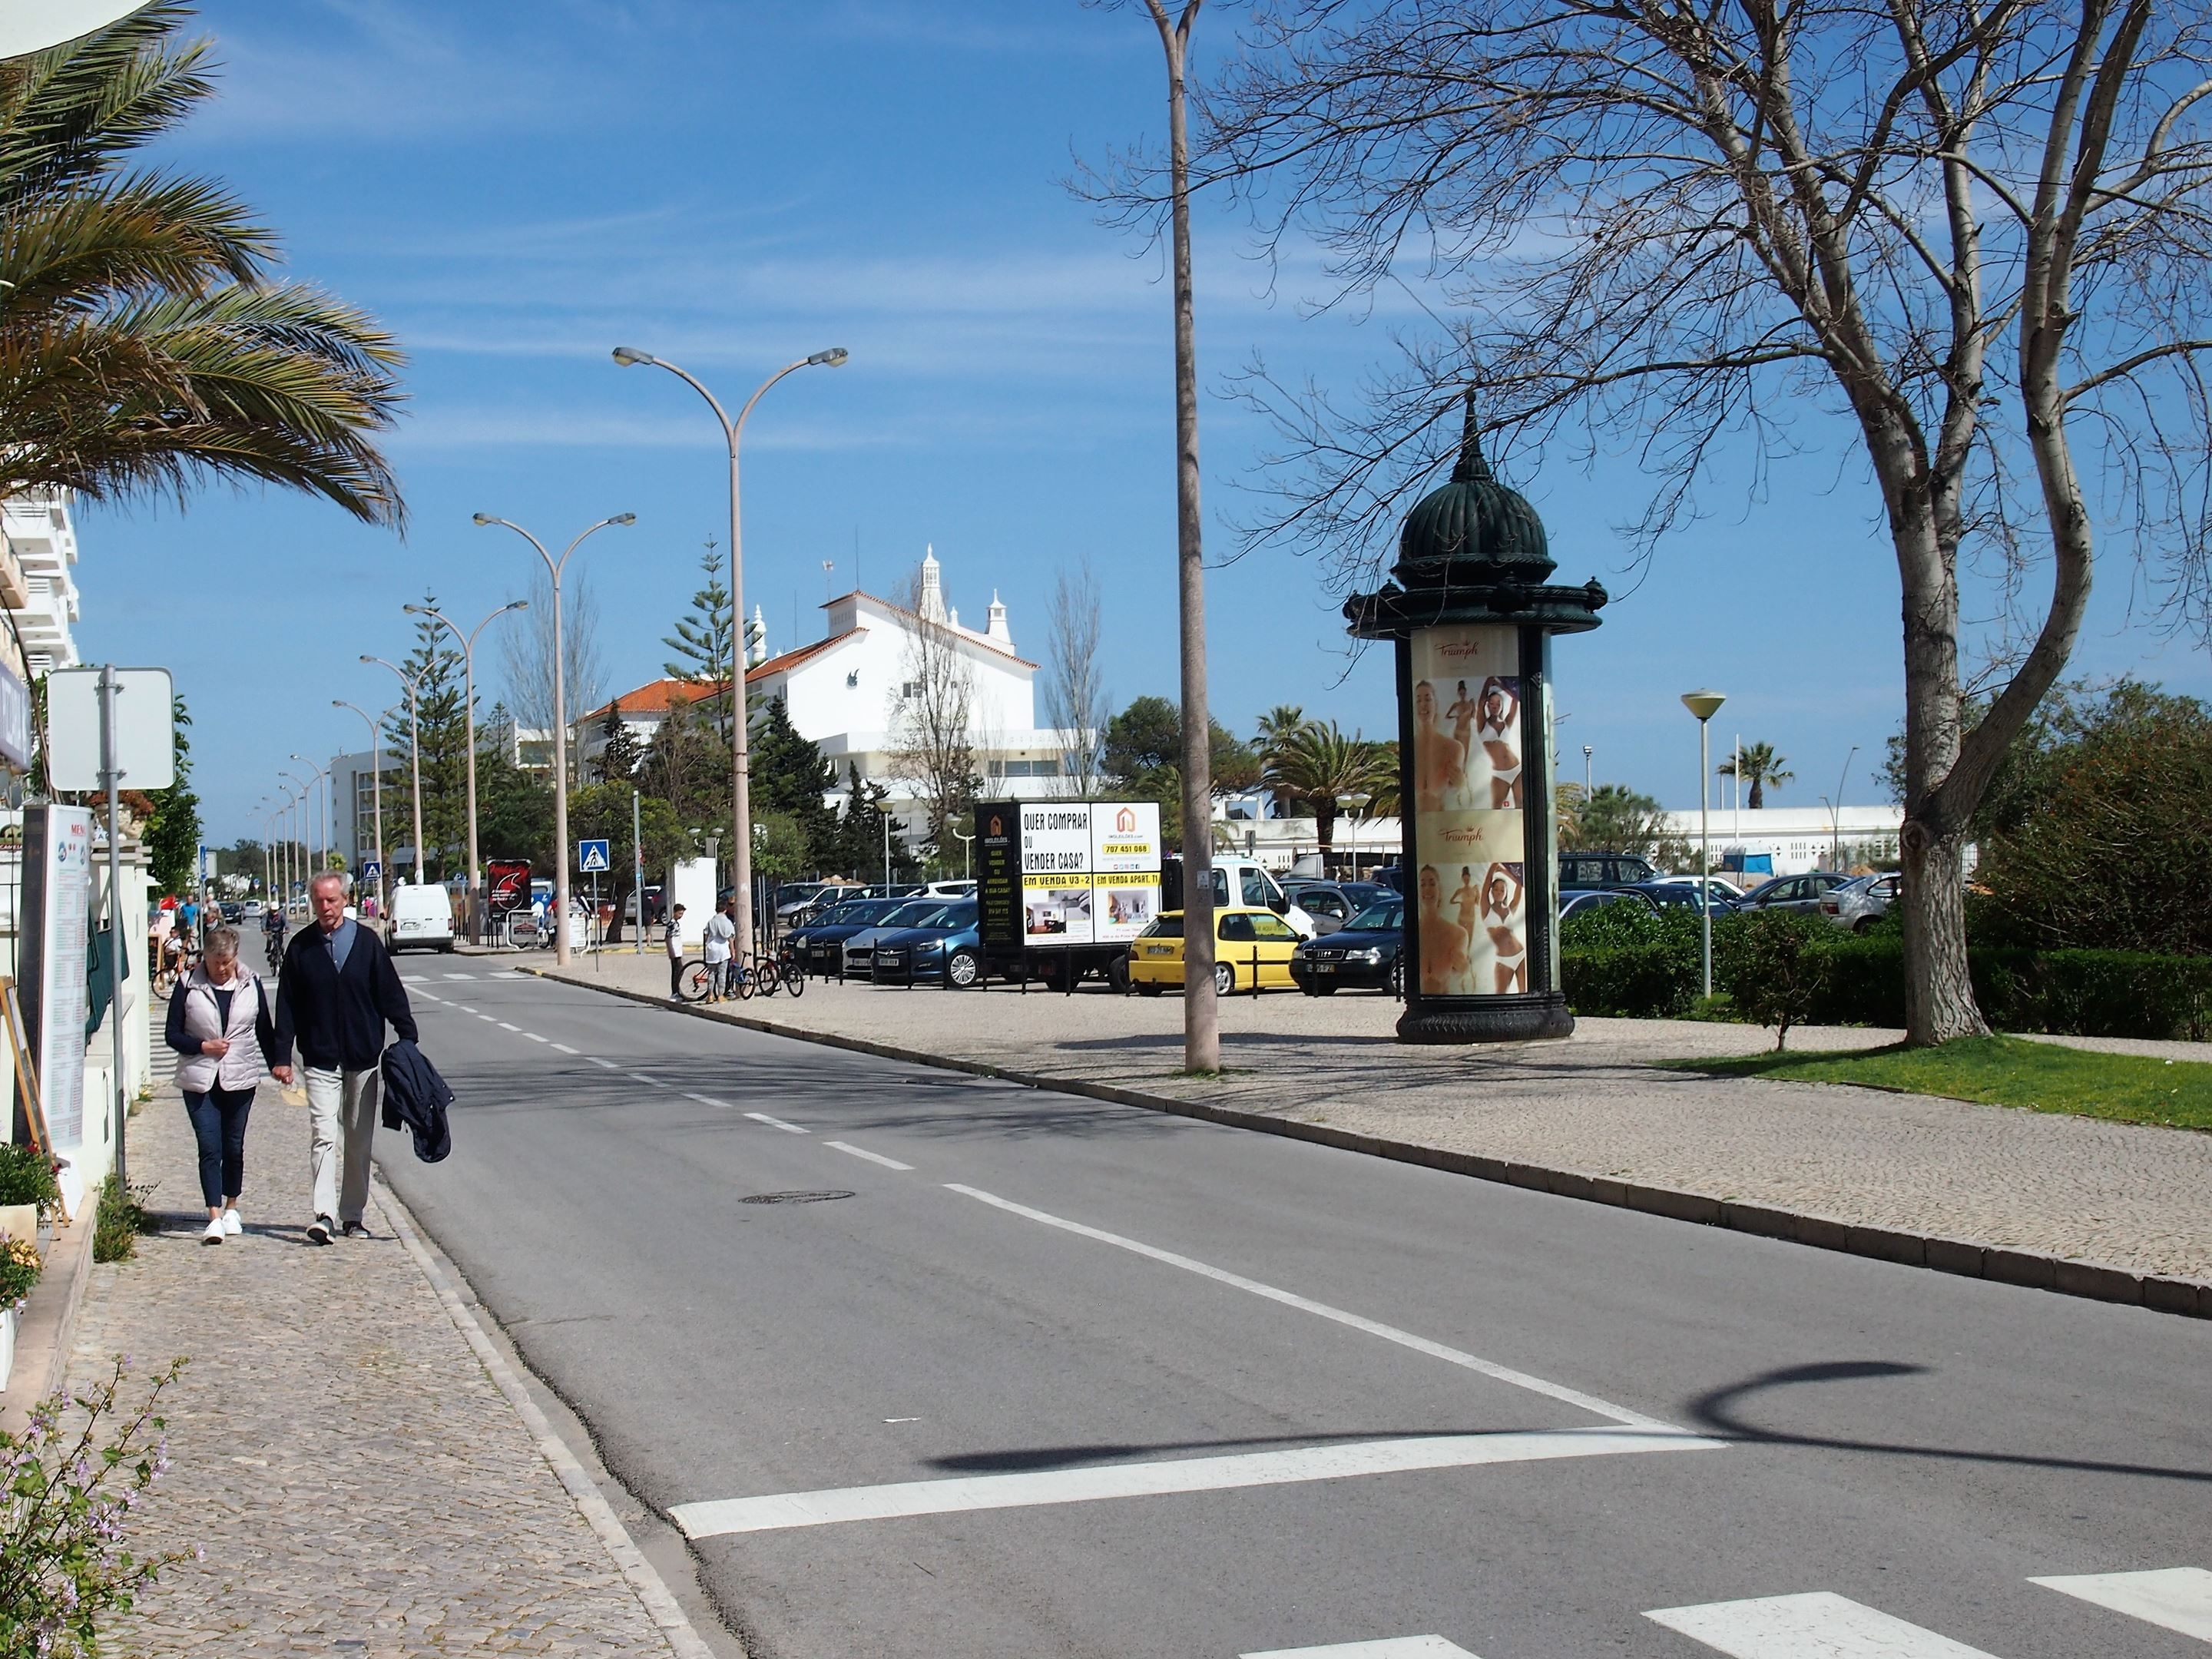 Main street in Monte Gordo facing the sea